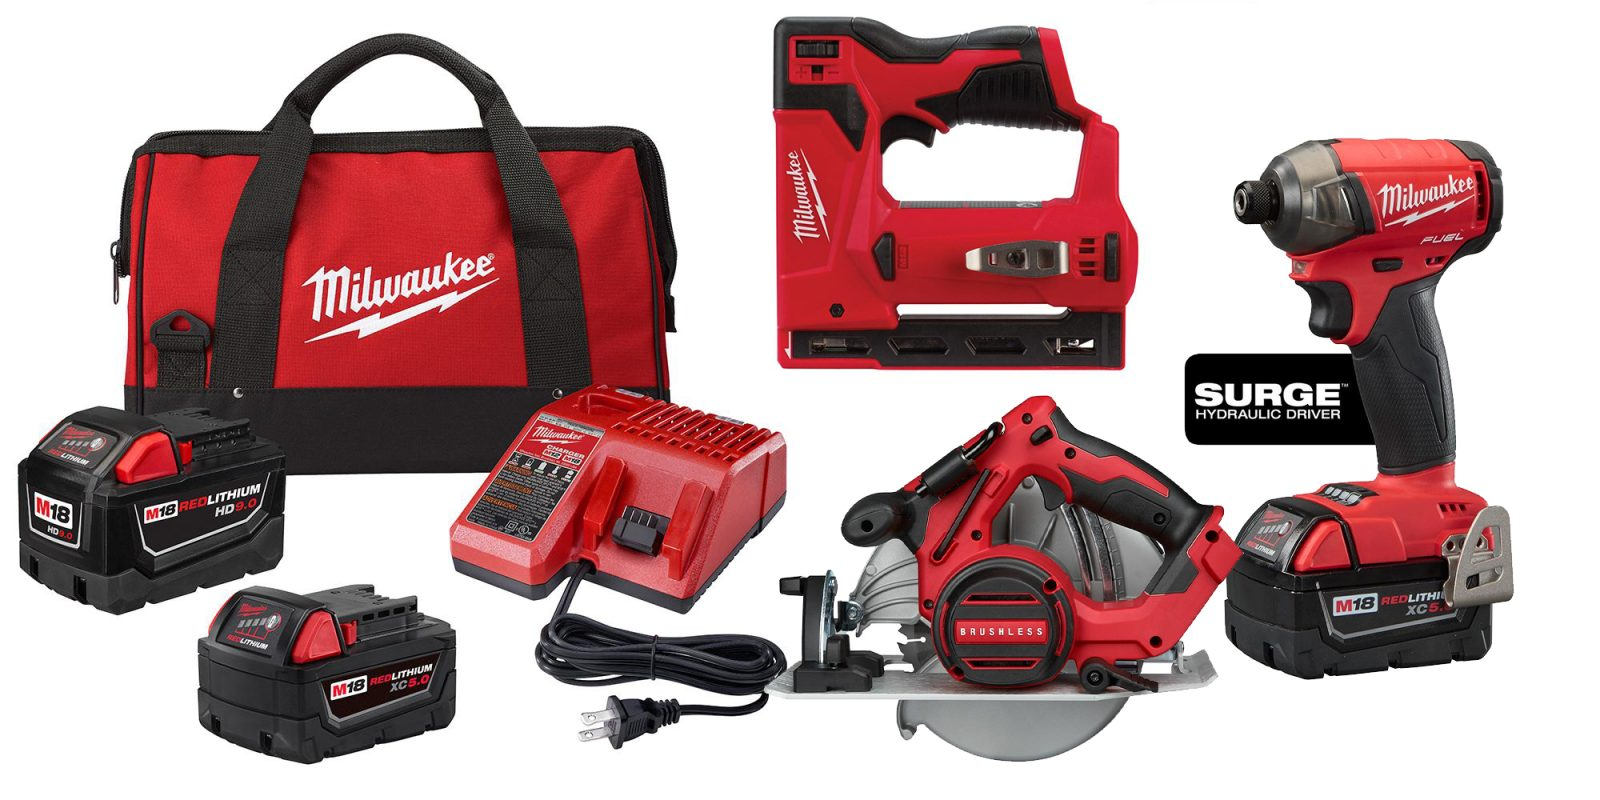 Home Depot's new Milwaukee tool sale starts at $99 with bonus accessories